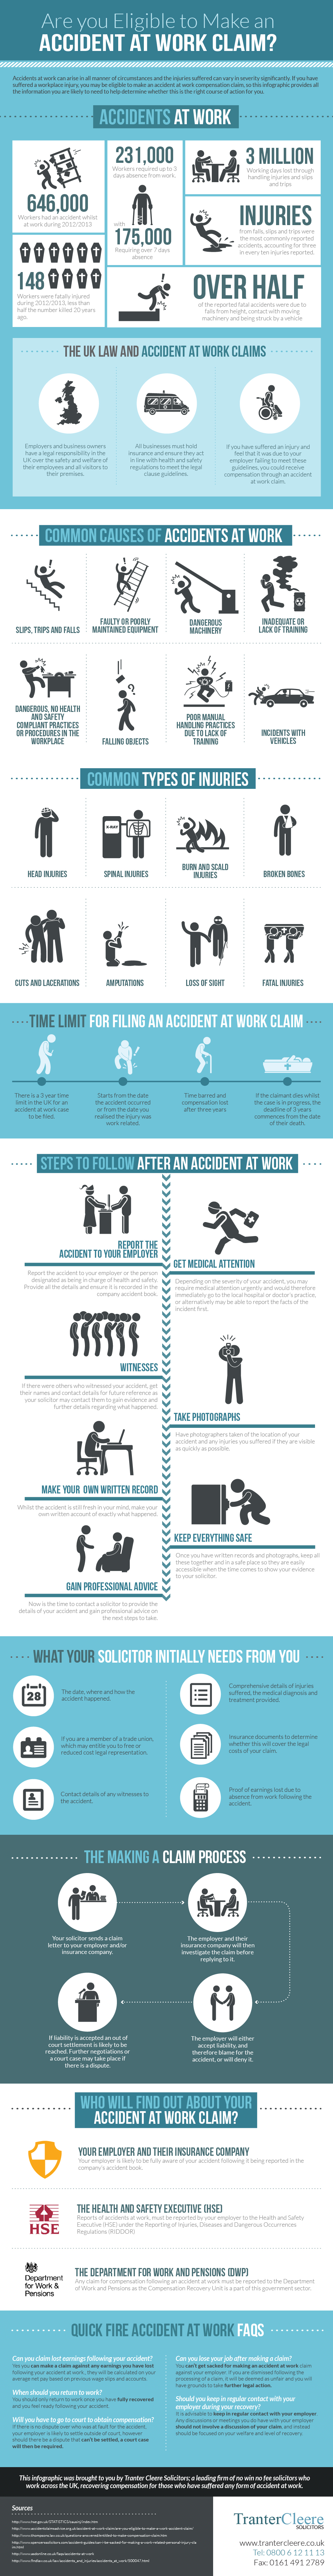 Accident at Work Infographic